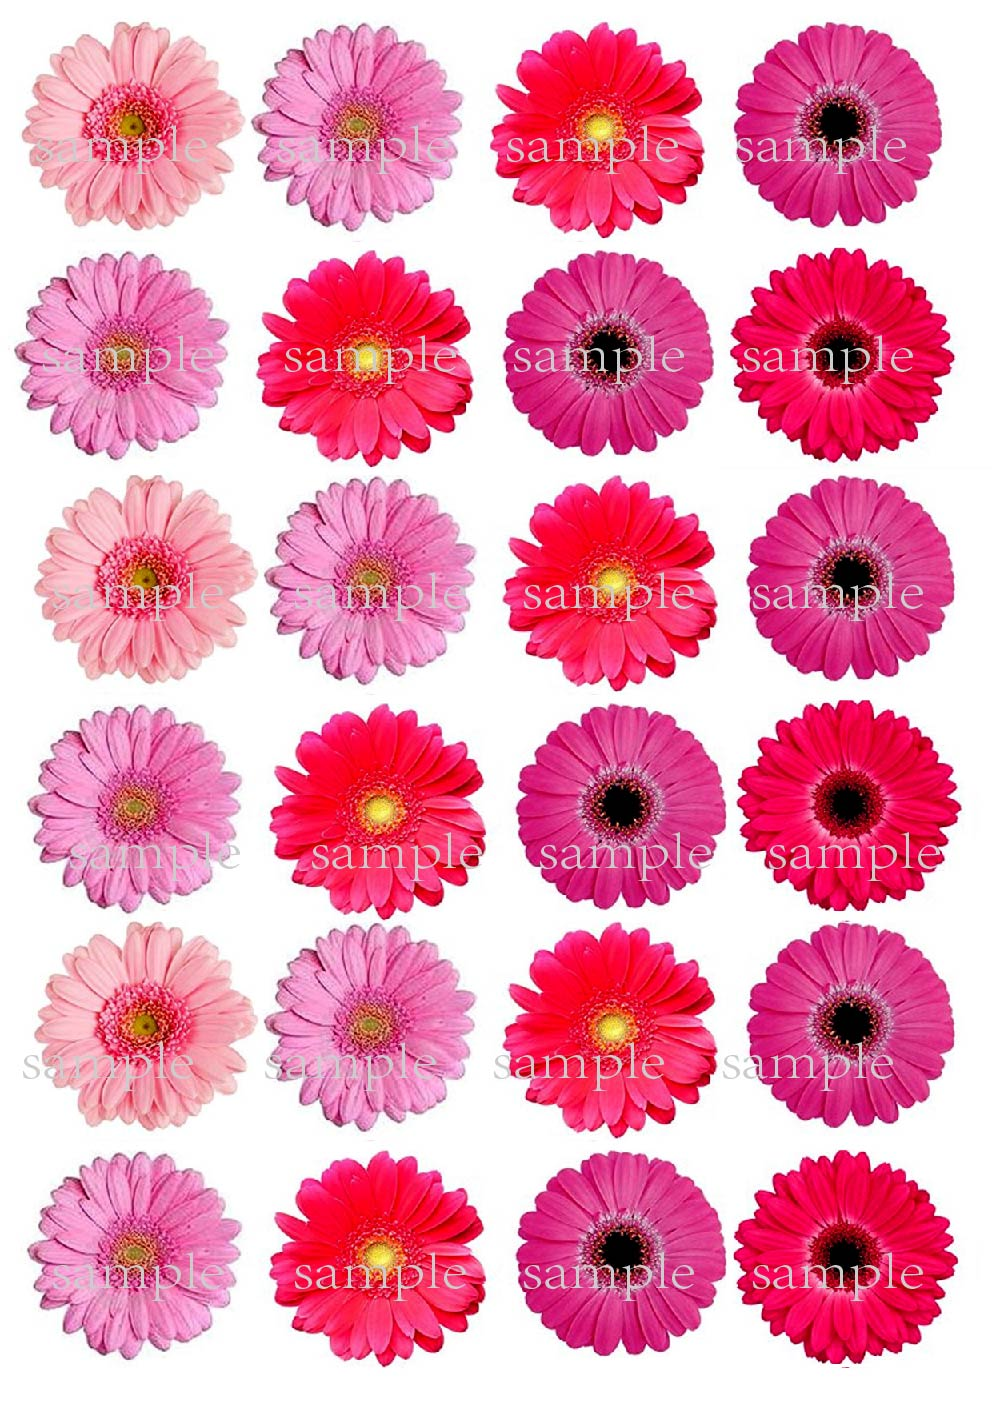 24 Mixed Pink Gerbera Flower Edible Cake Topper Wafer Rice Paper Amplo Putih Cupcake Decoration Birthday Wedding Decor Gift In Decorating Supplies